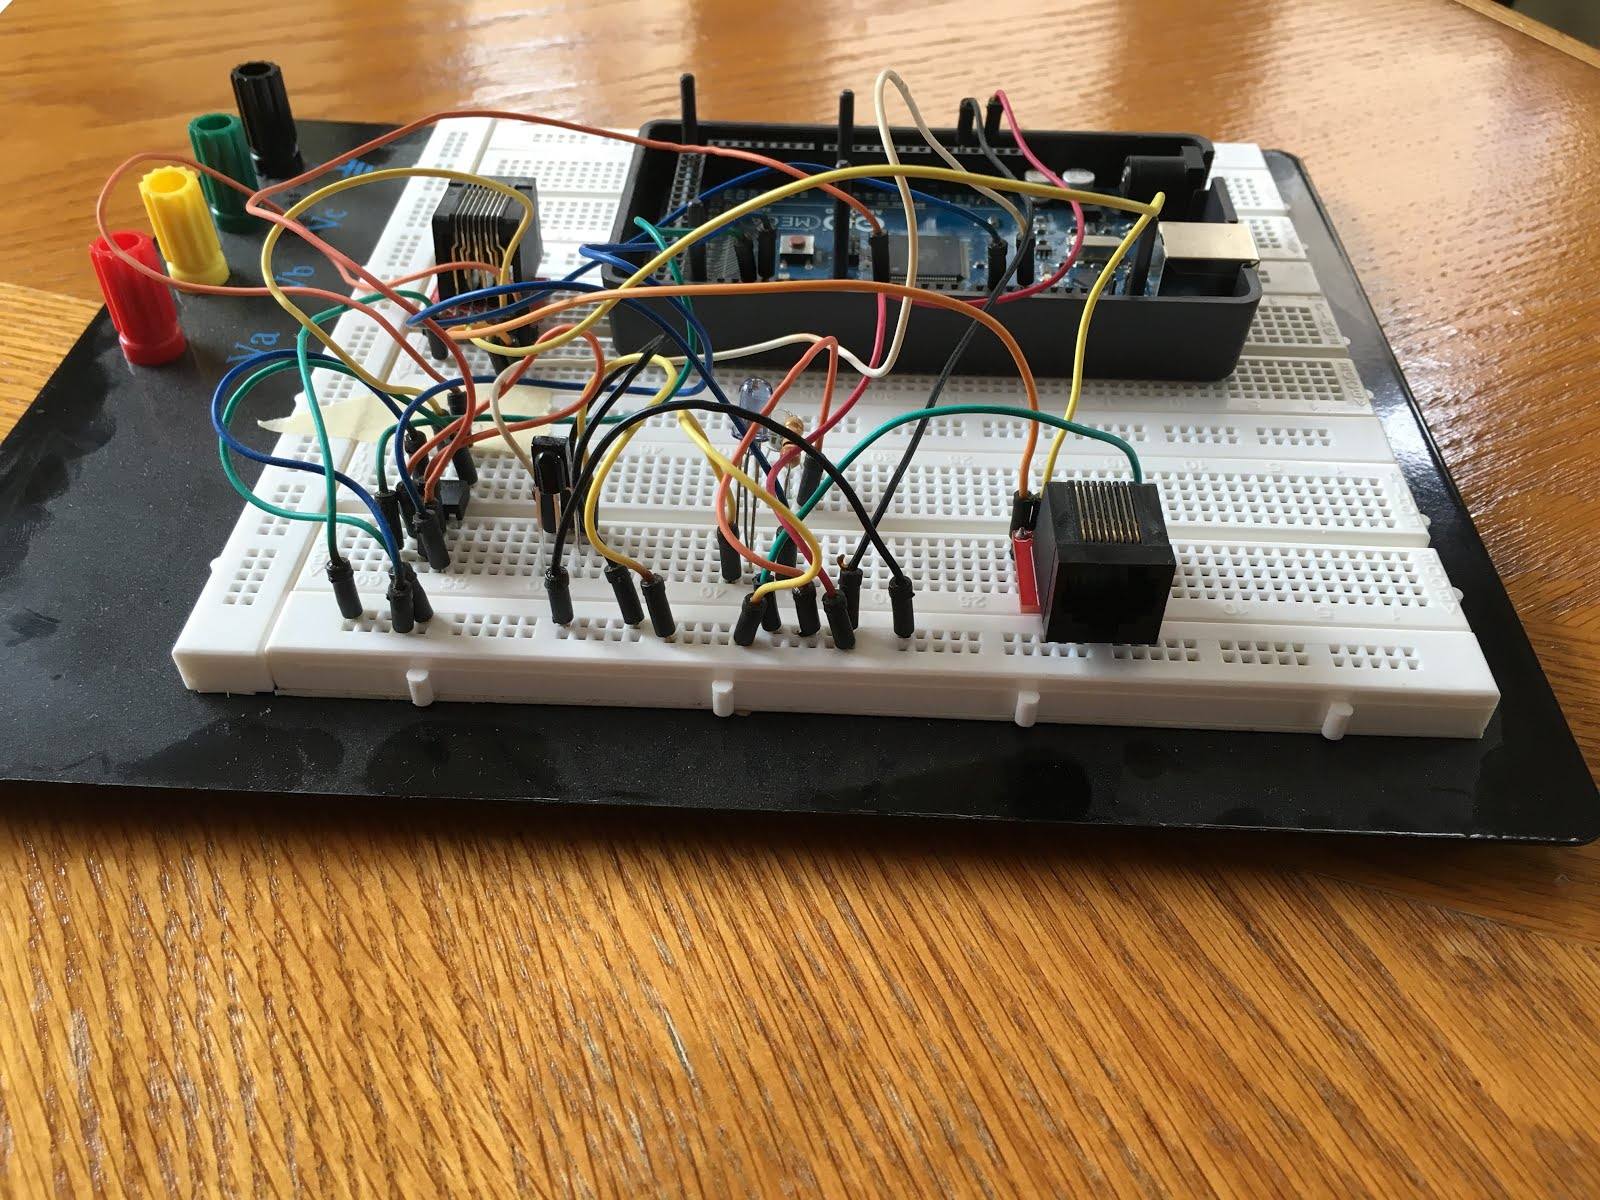 Marks Blog Building An Ir To Rs485 Bridge Verysimpleirremotecontrolcircuit I Wanted Be Able Control My Somfy St30 Rs 485 Shades Via Universal Infrared Remote So Built A Simple Project Using Arduino Aka Genuino